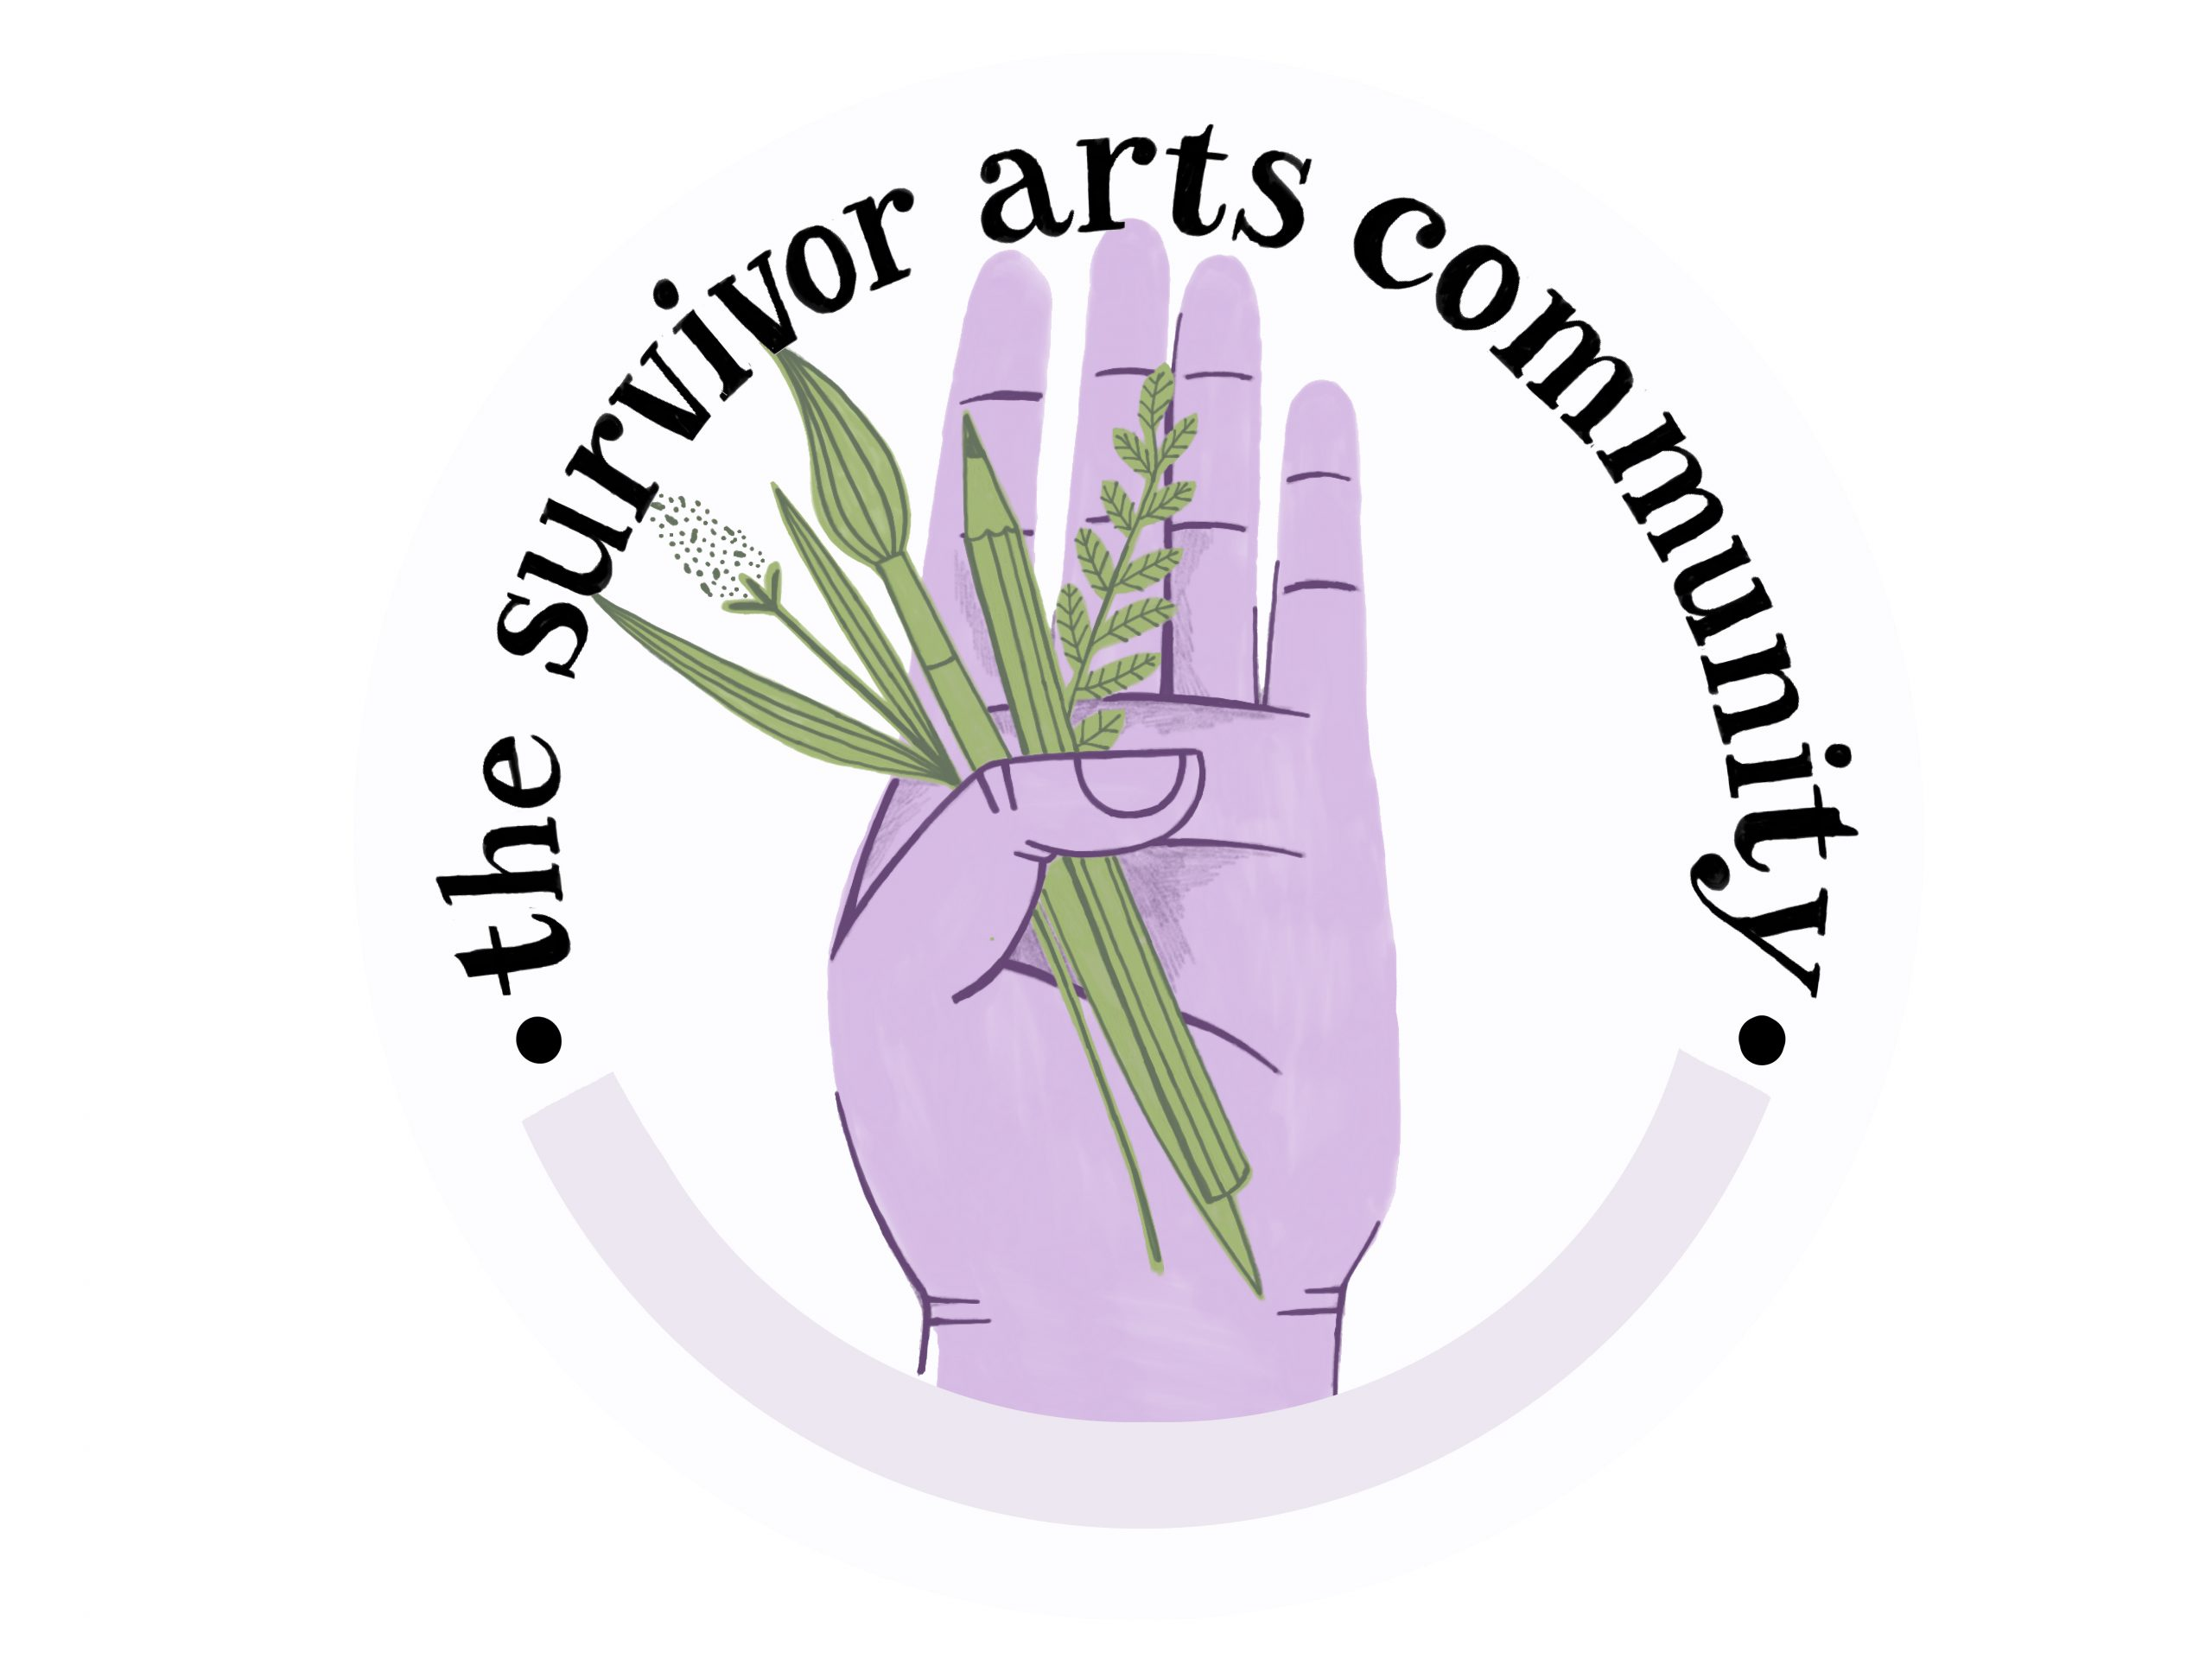 the survivor arts community logo with a purple illustration of a hand holding flowers.